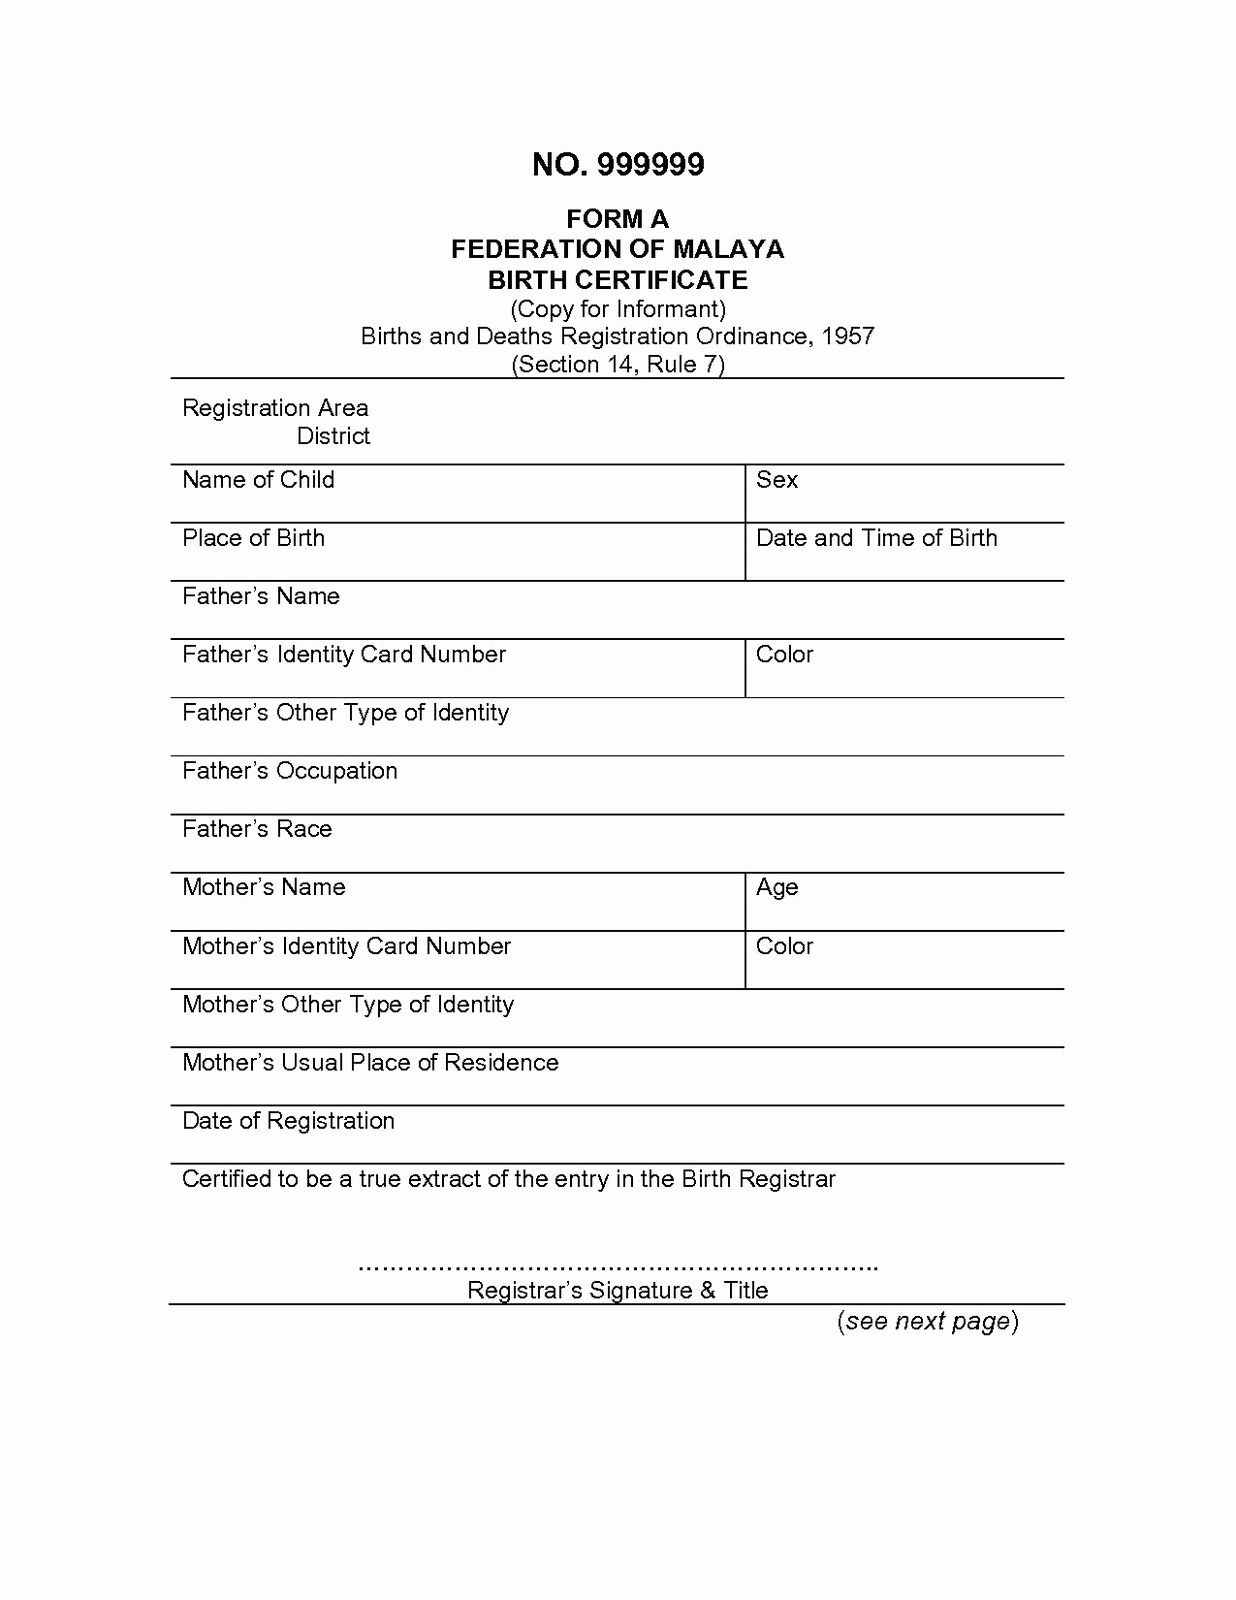 The breathtaking Marriage Certificate Translation Template